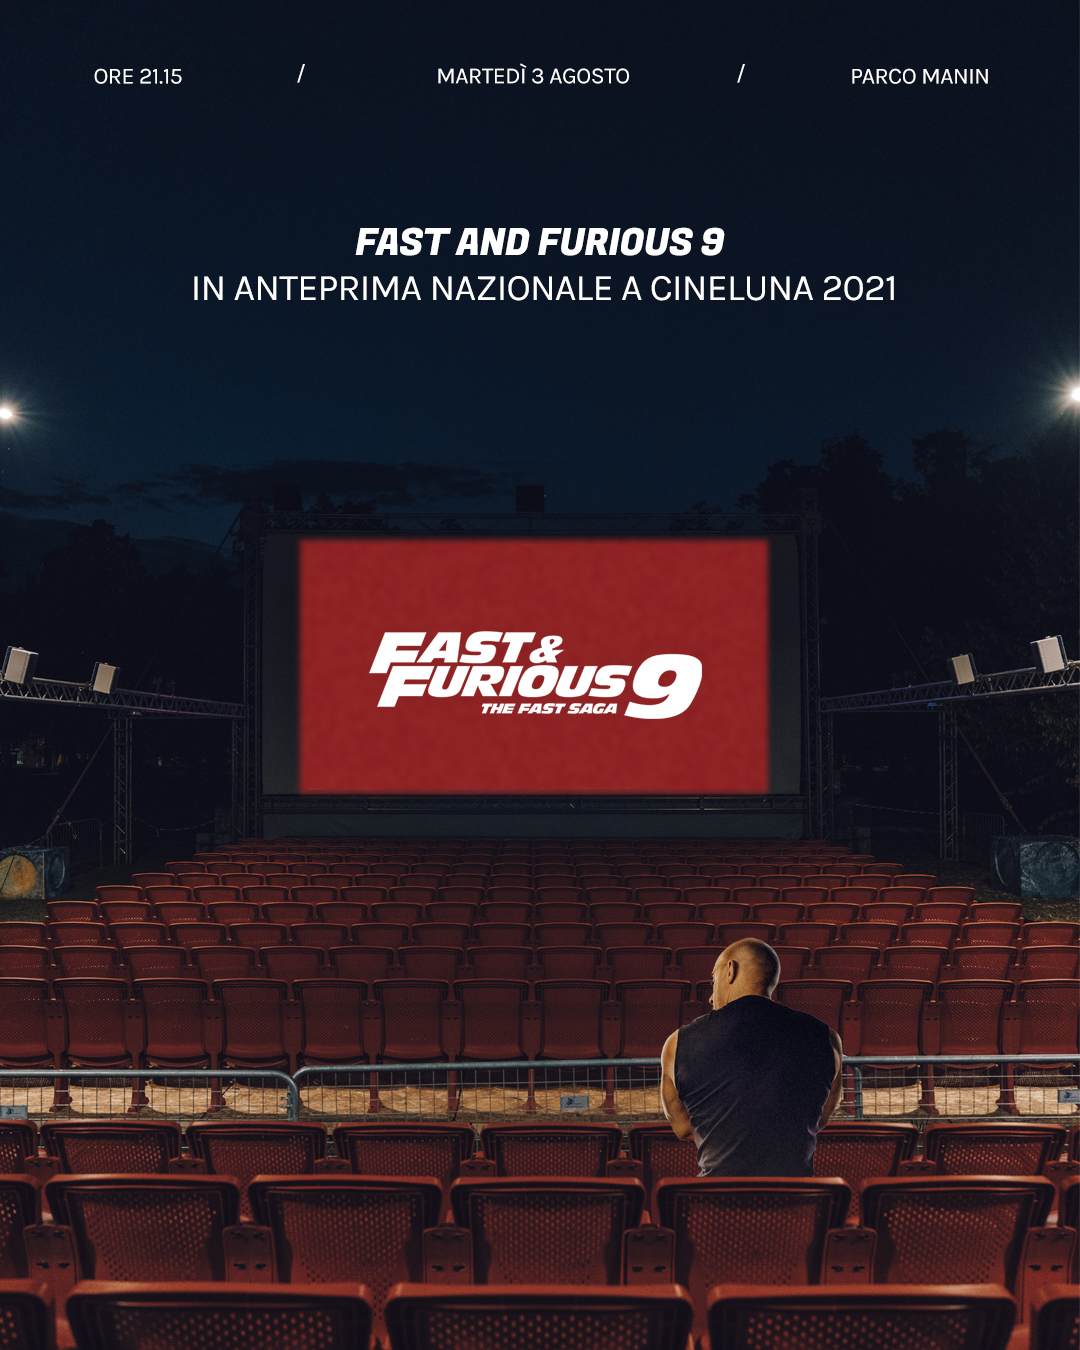 Fast and furious 9 - Anteprima nazionale